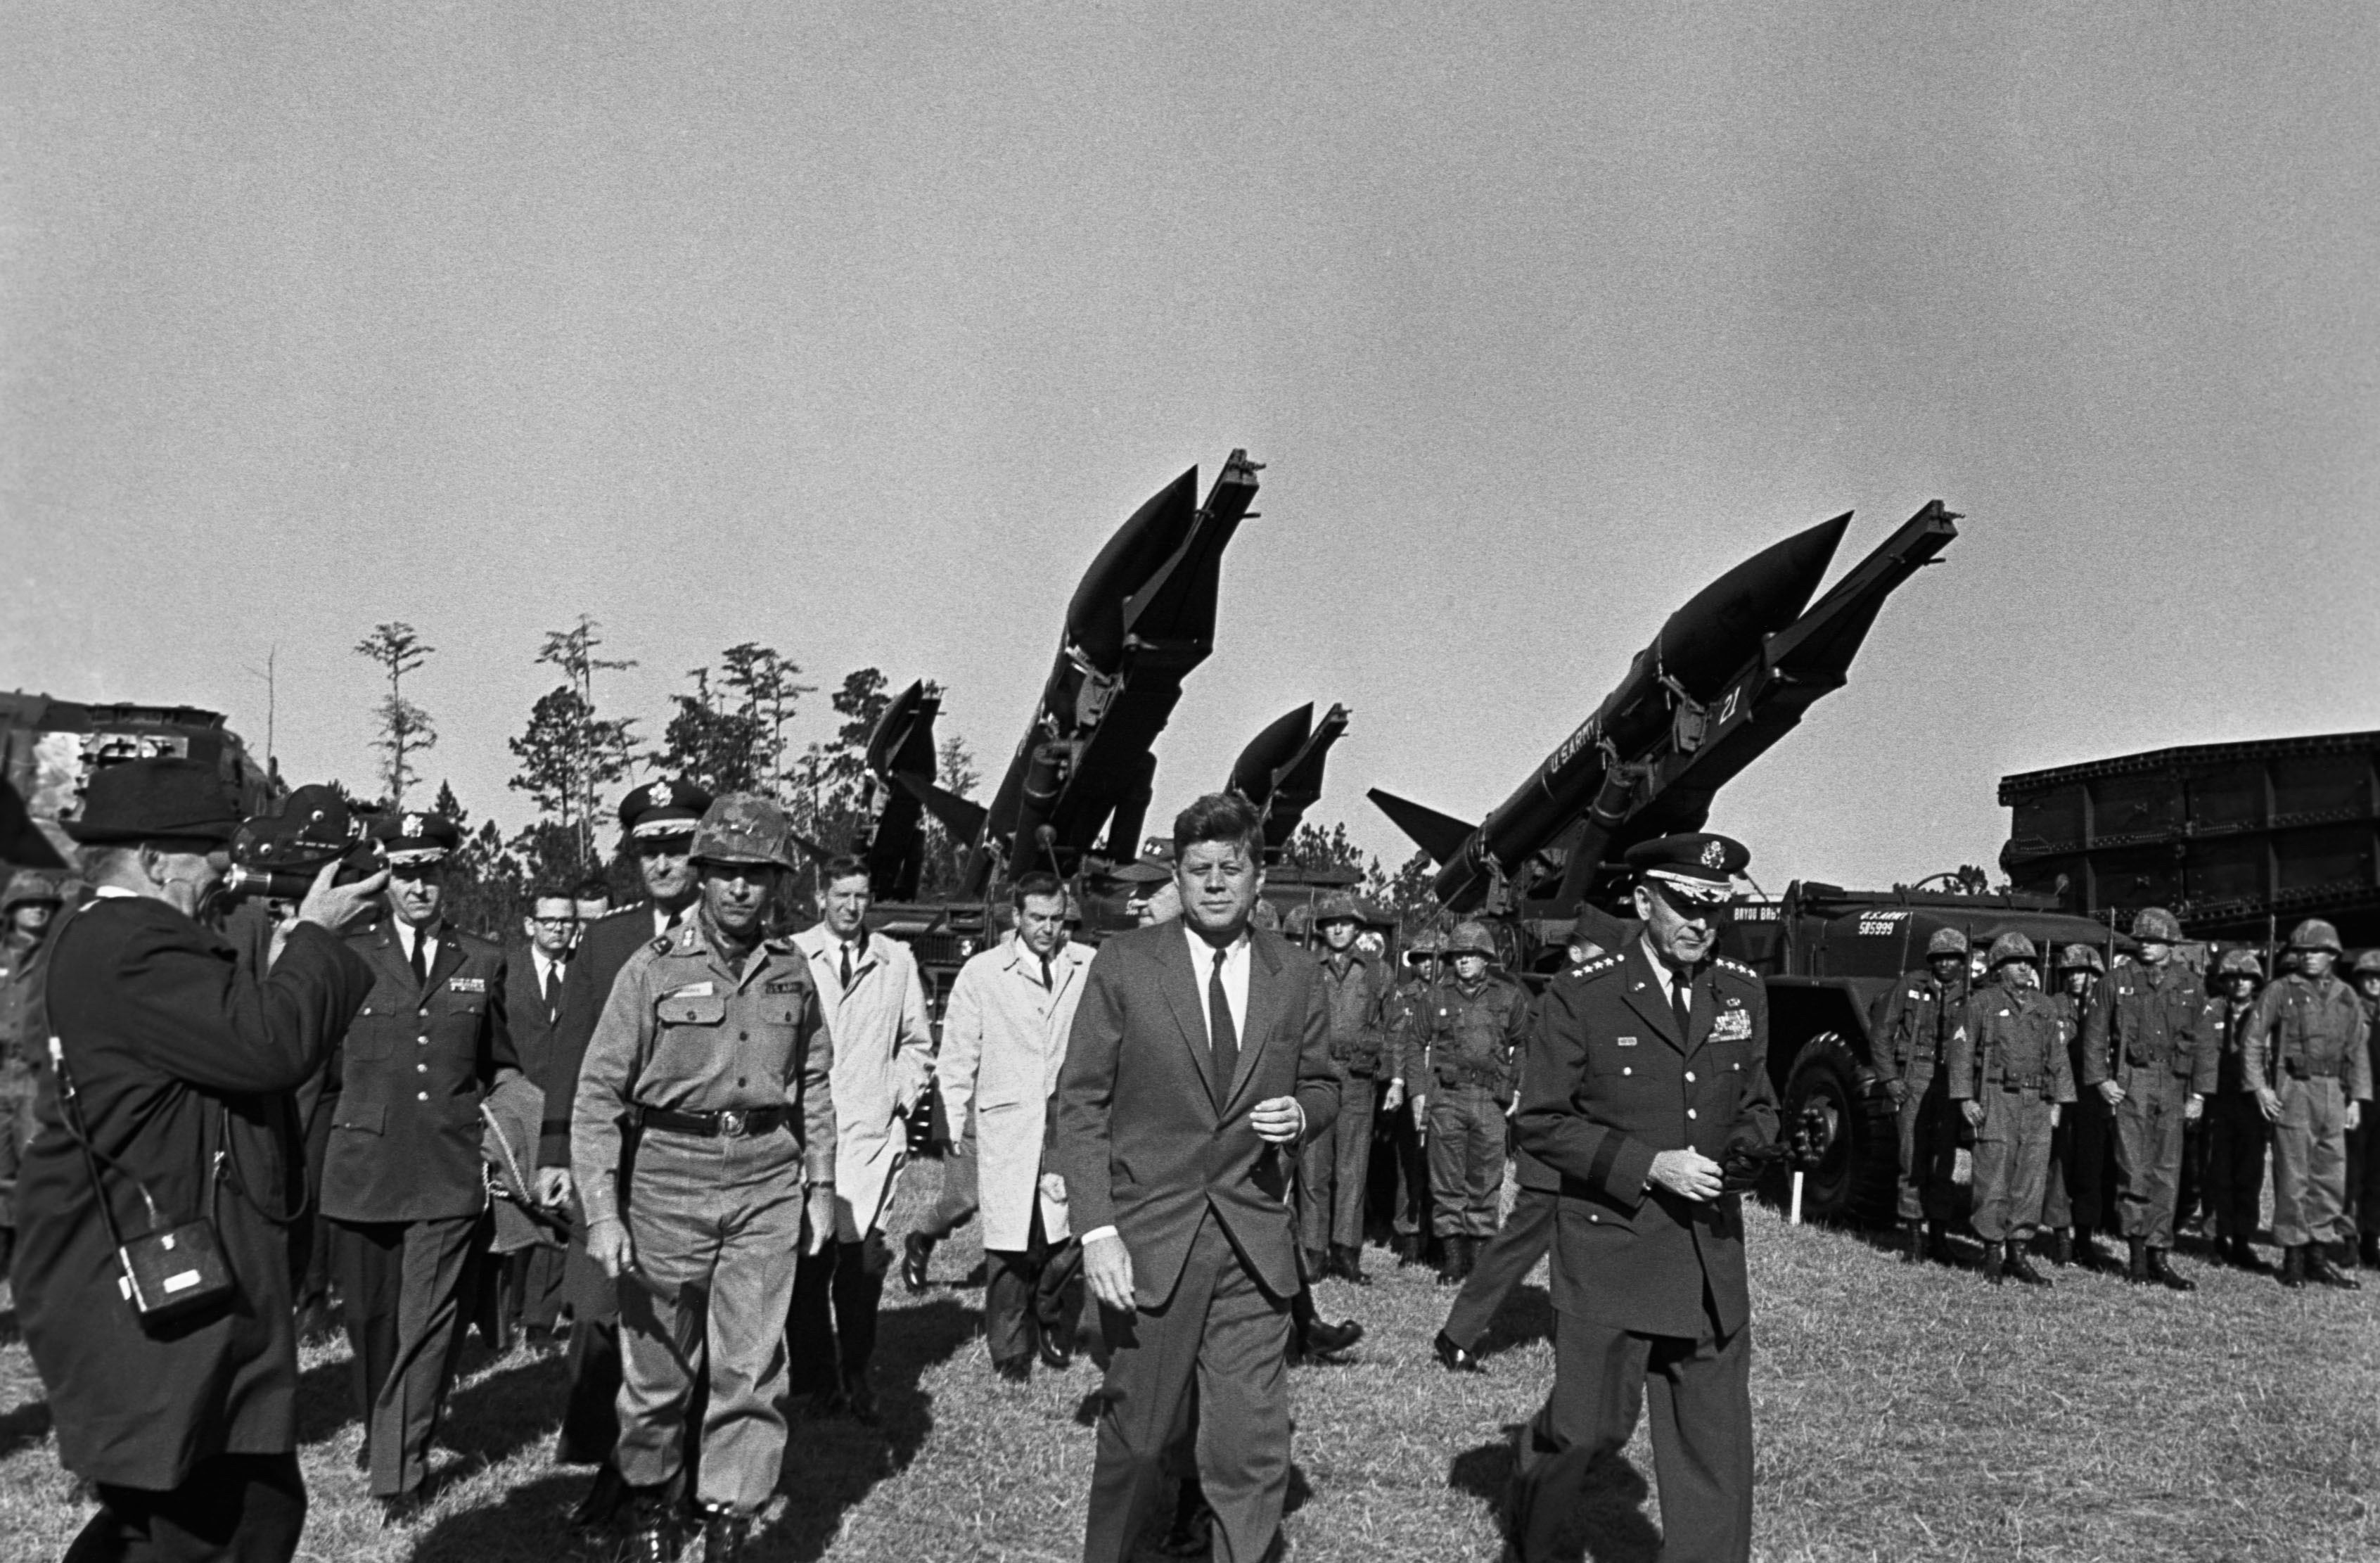 the background history of the cuban missile crisis Prelude the cuban missile crisis of october 1962 was one of the turning points of the cold war between the united states and the soviet union.